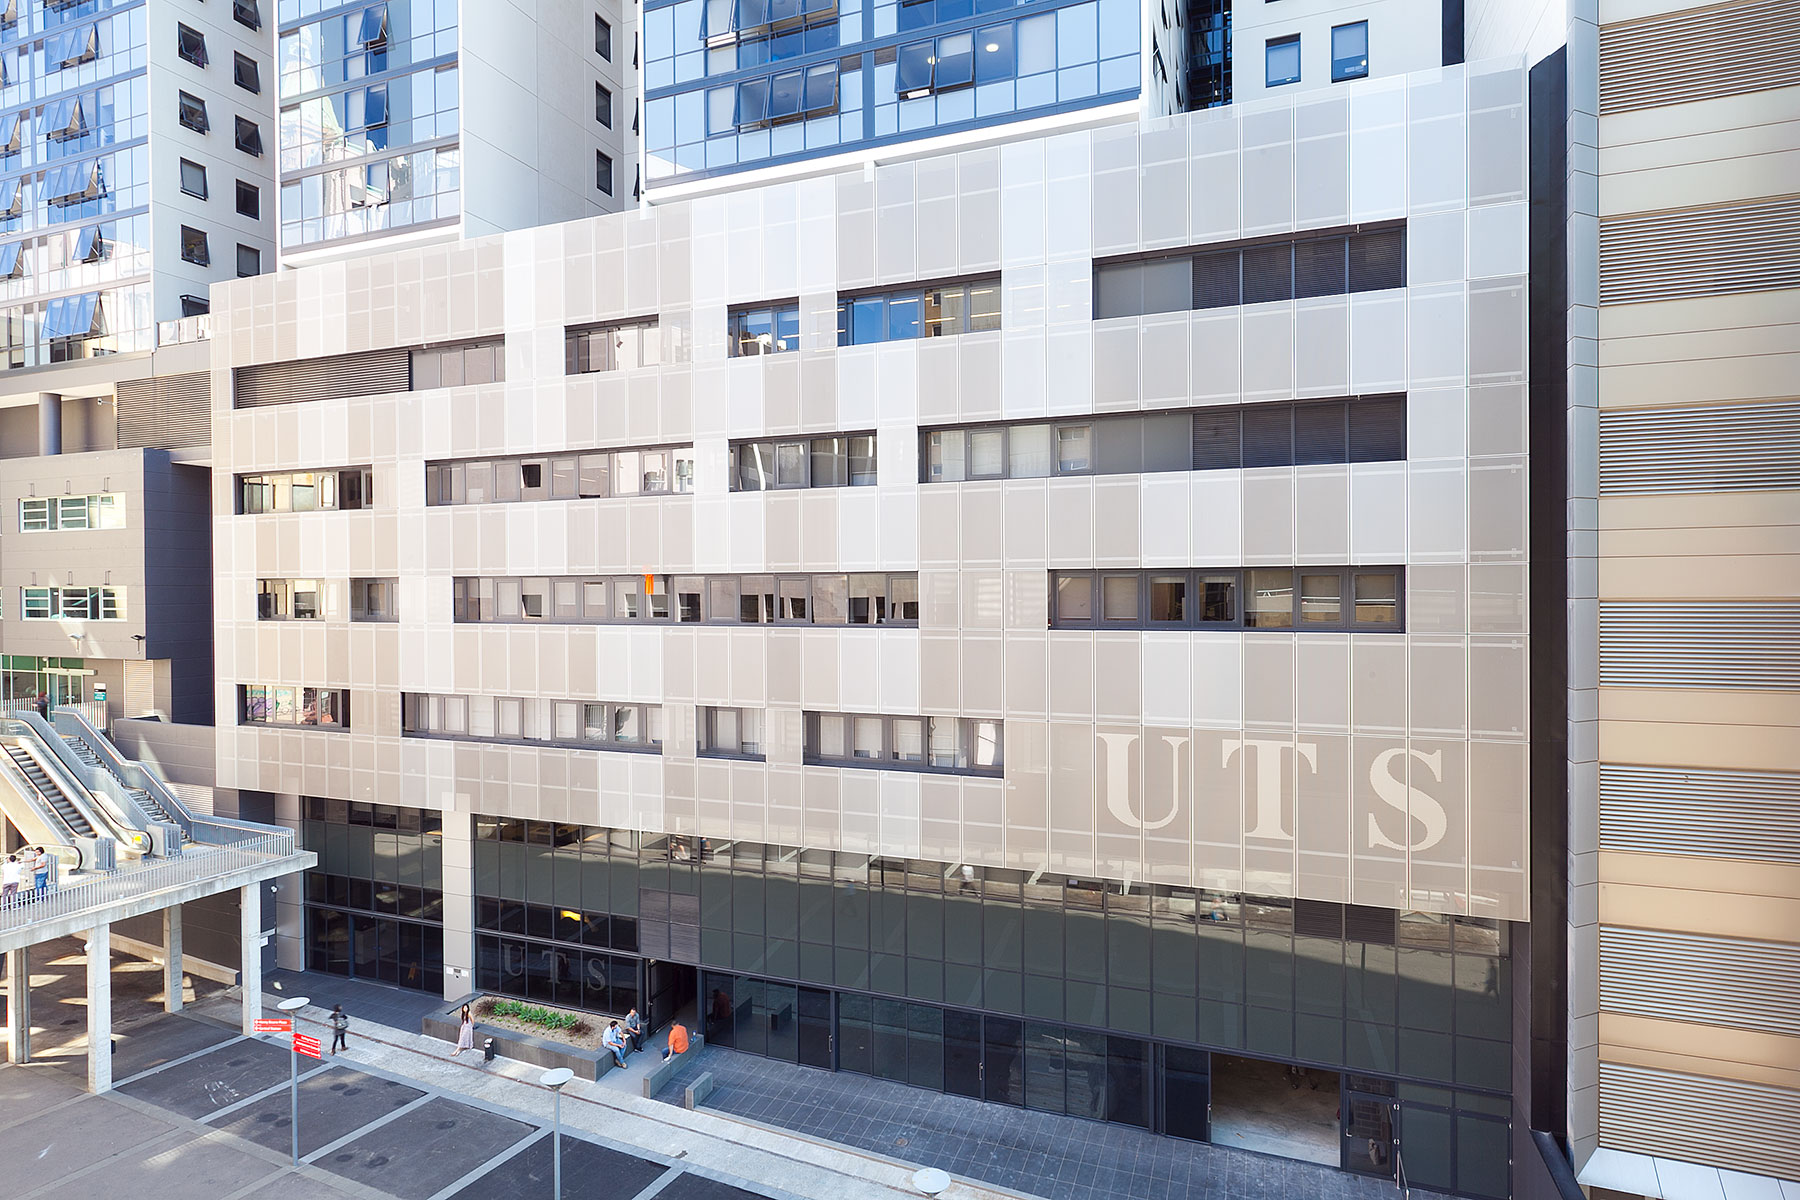 The back facade of Peter Johnson Building, where UTS: DAB is located